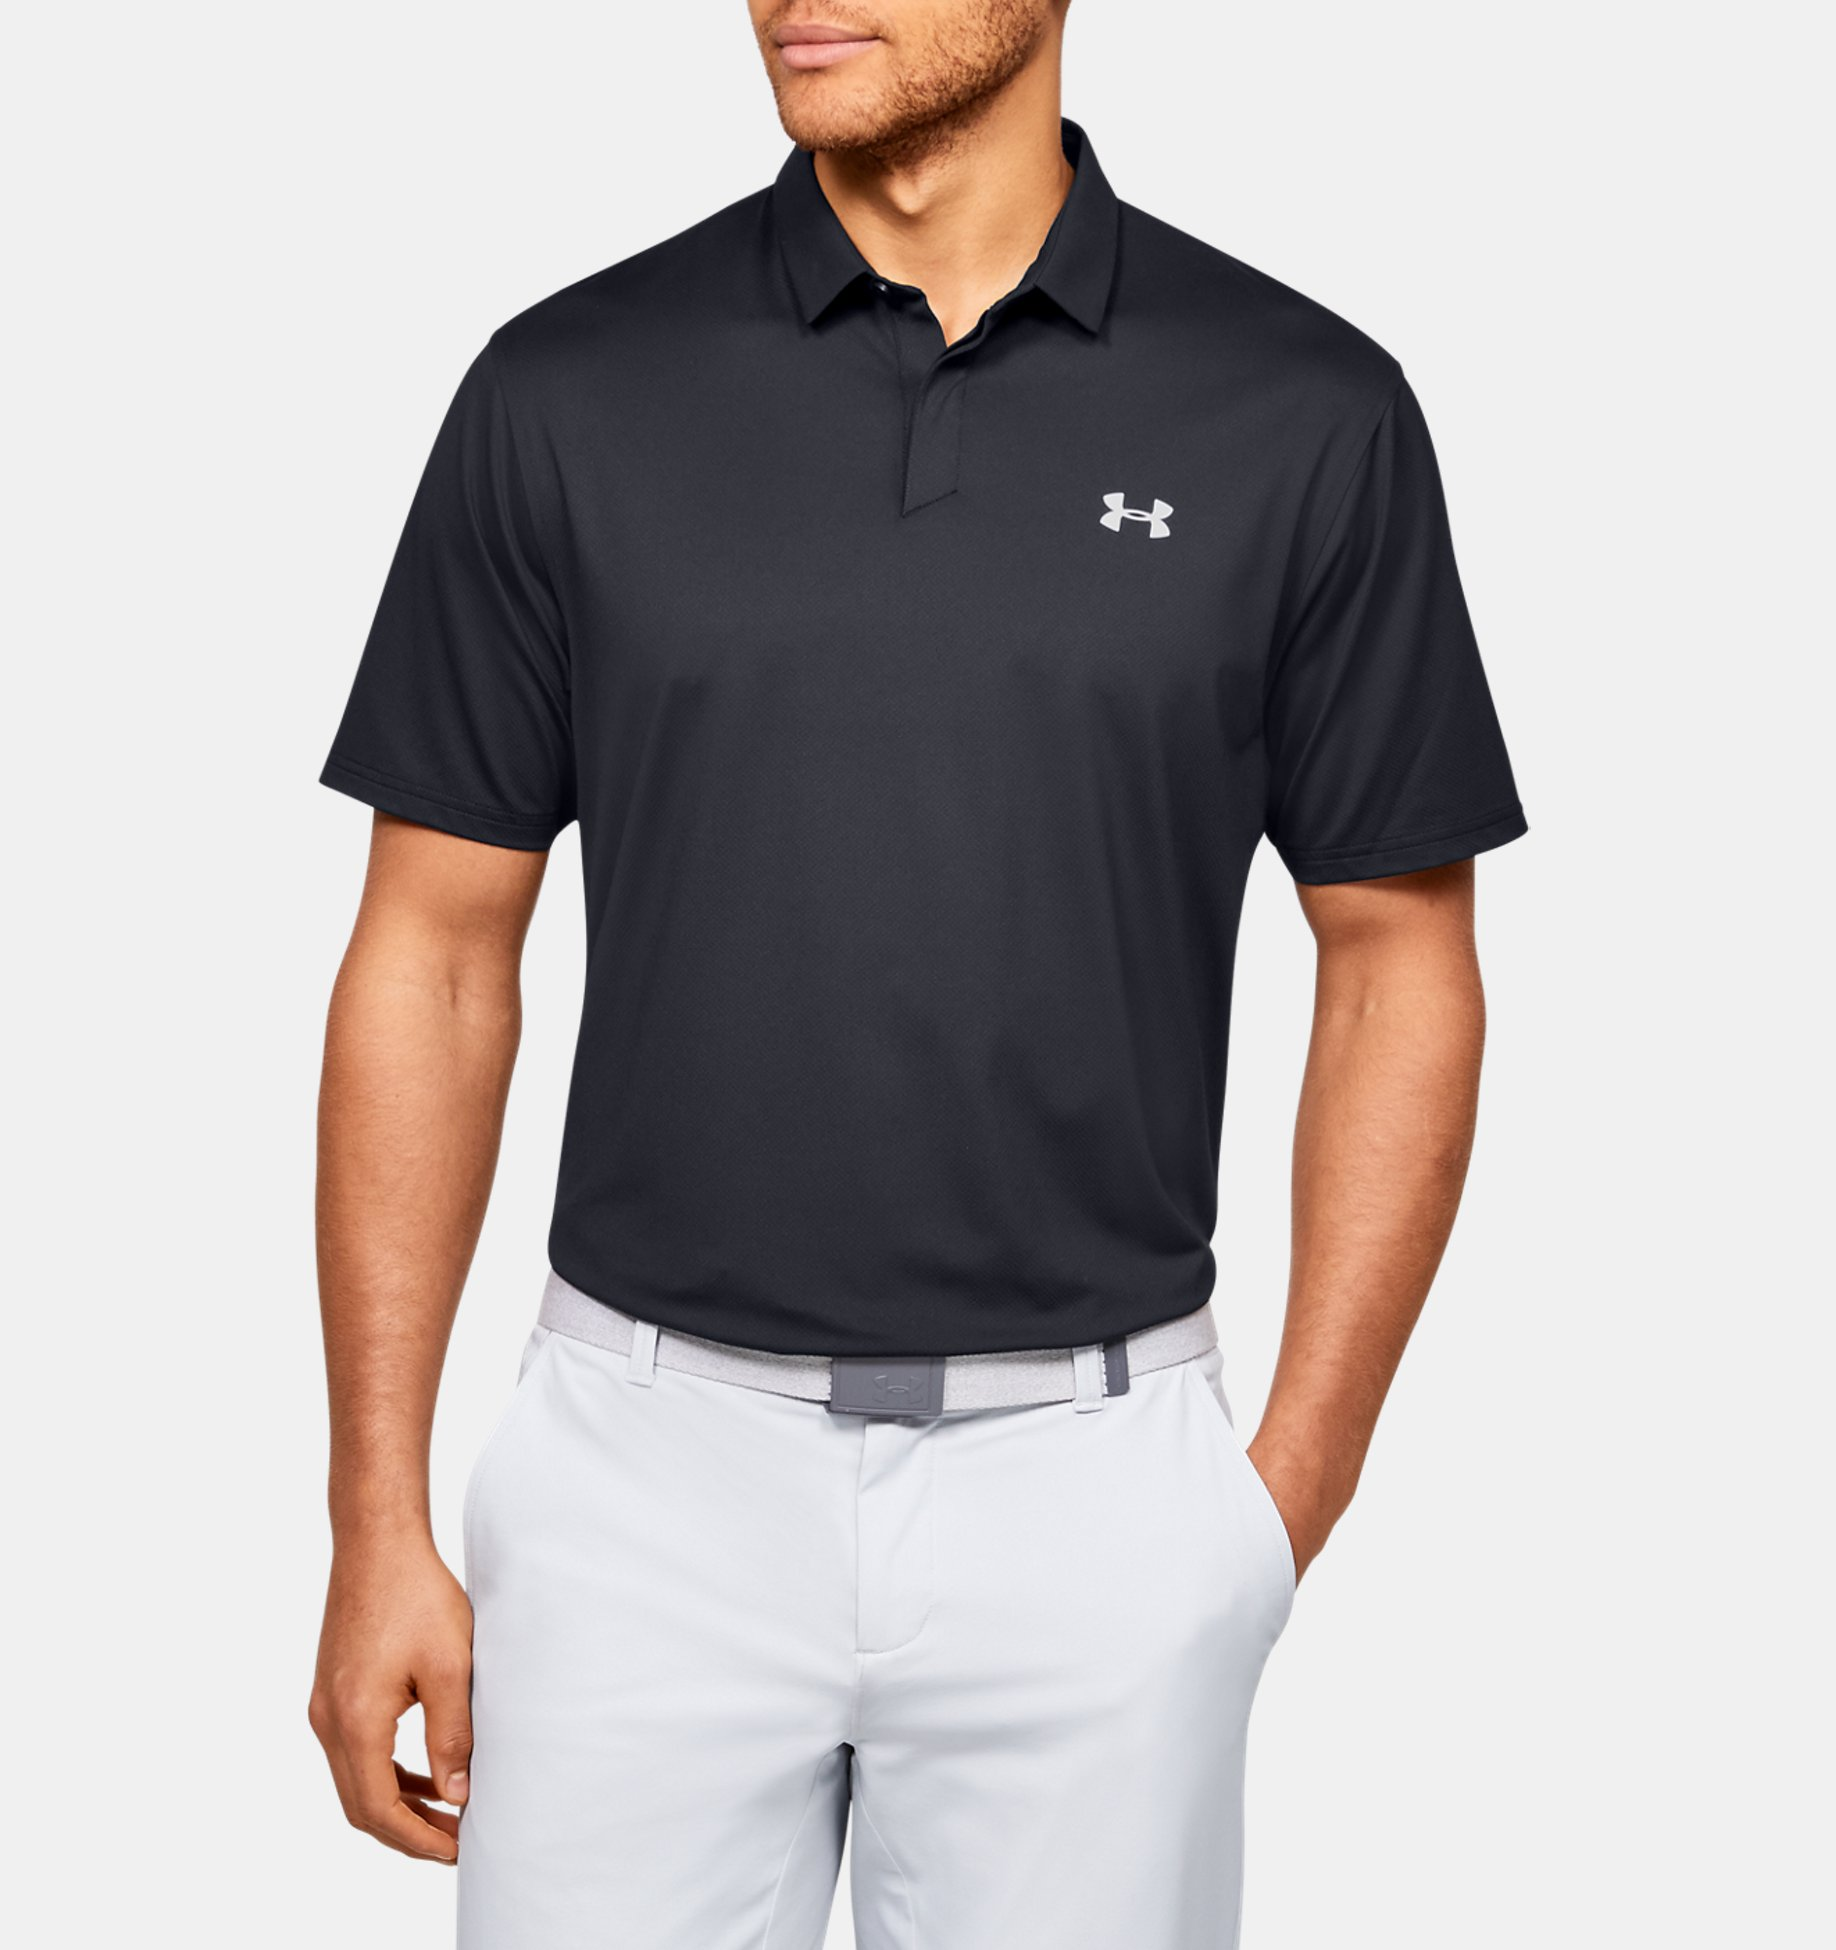 Underarmour Mens UA Iso-Chill Printed Polo